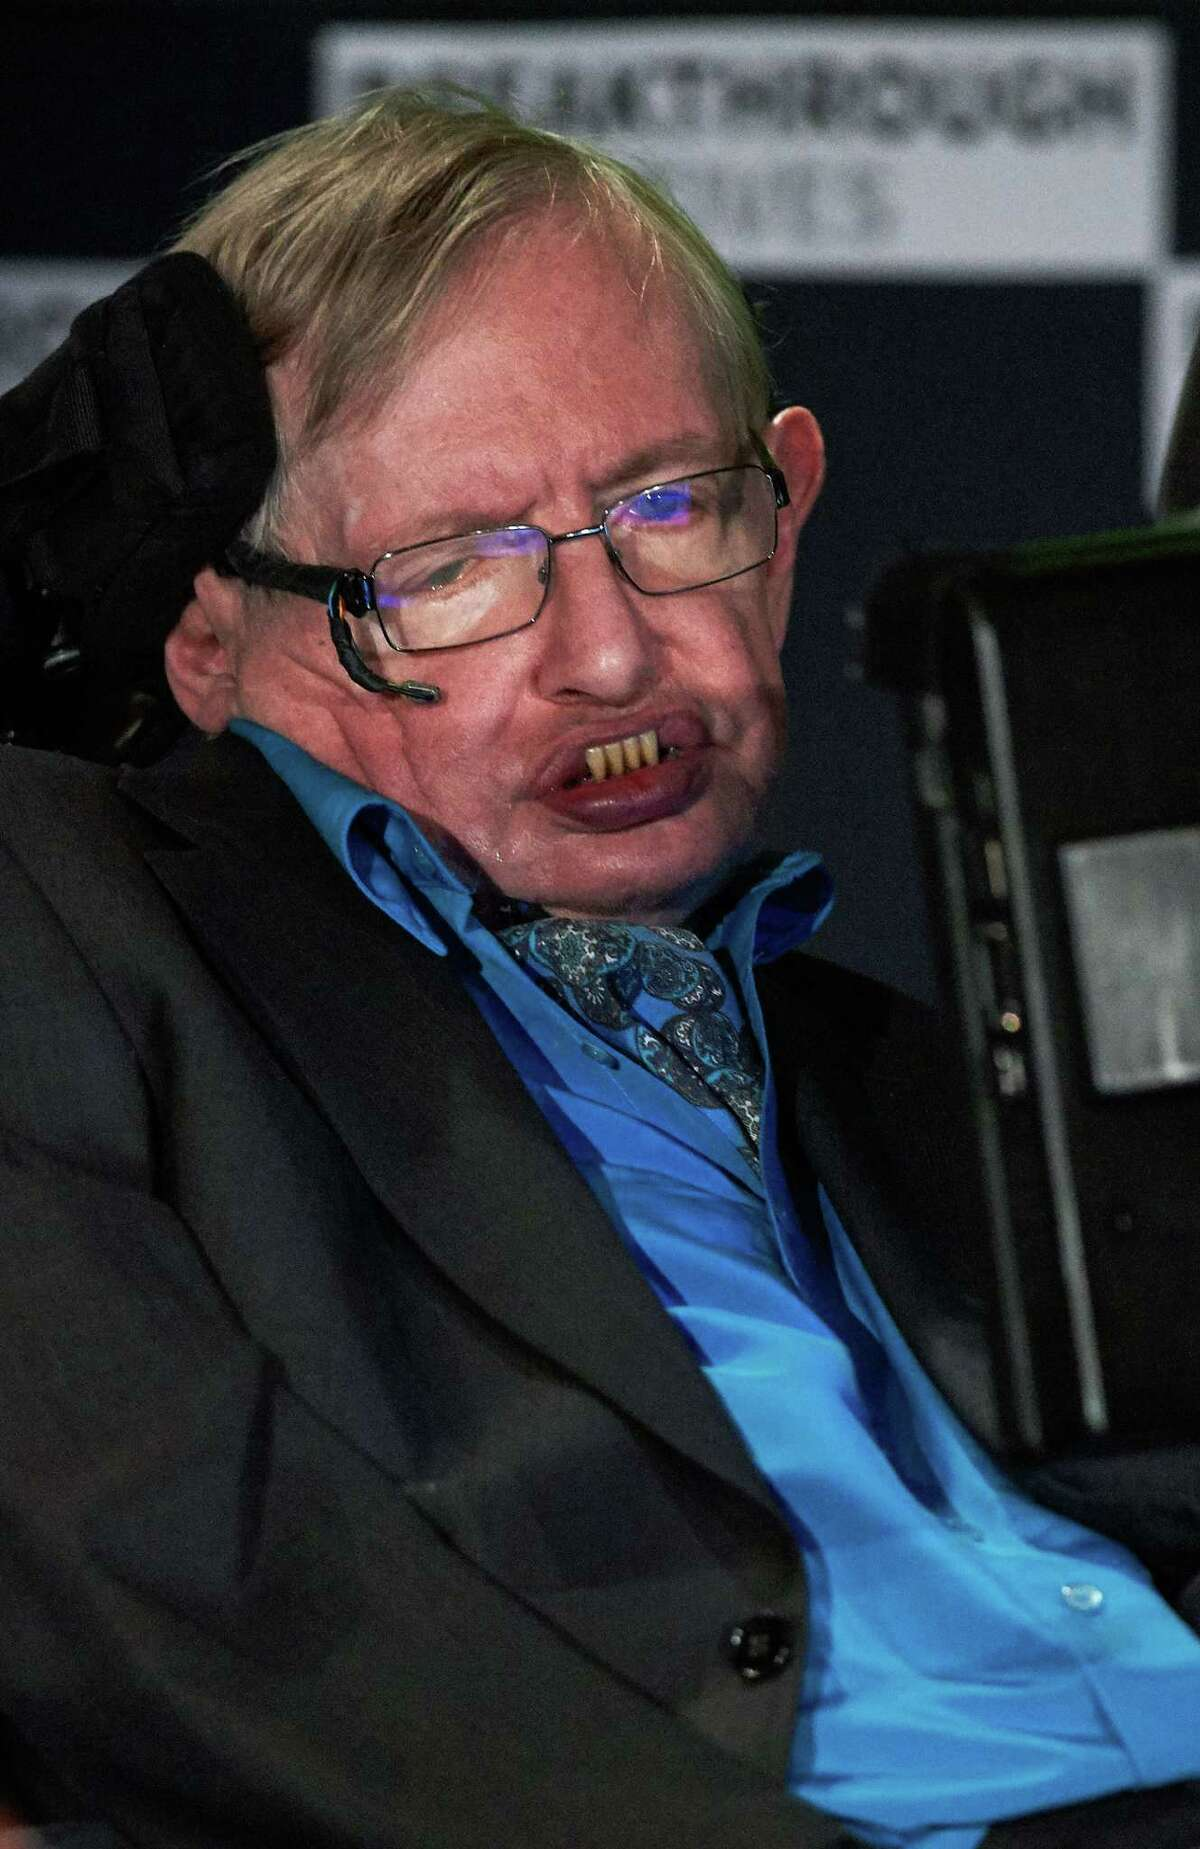 Stephen Hawking The British scientist said in 2010 that it would be foolish of humans to make contact with aliens because it's not likely to go well for us.